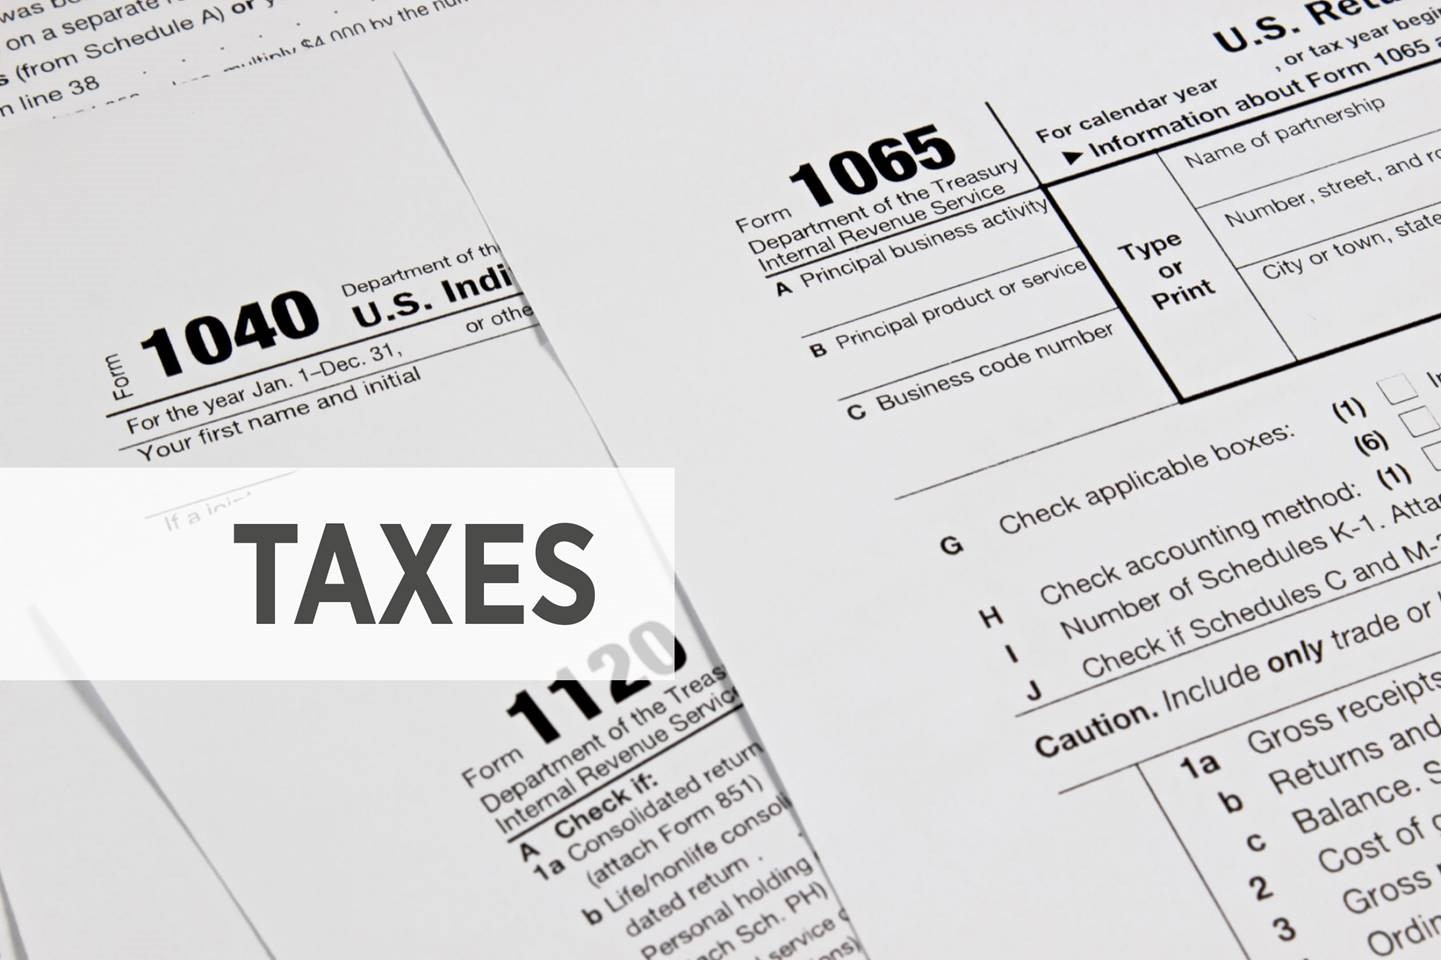 2018 New Tax Act - What You Need to Know ***MEMBERS ONLY***, Easton